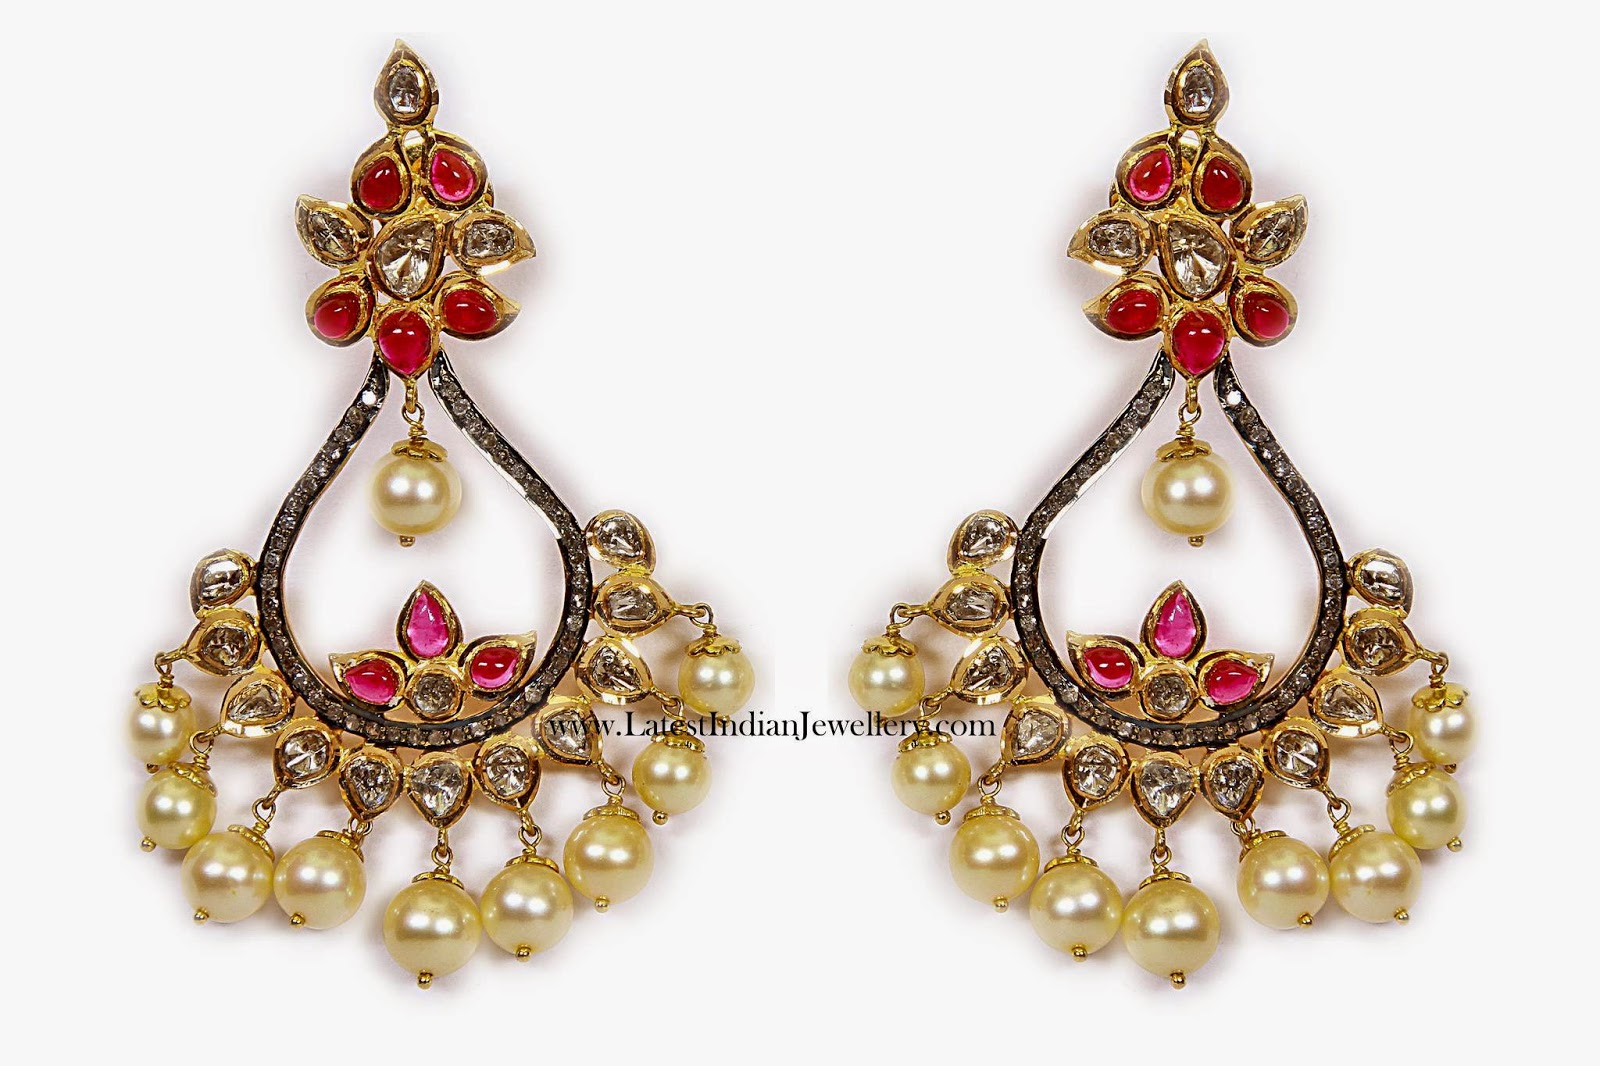 Polki Diamond ChandBali Earrings